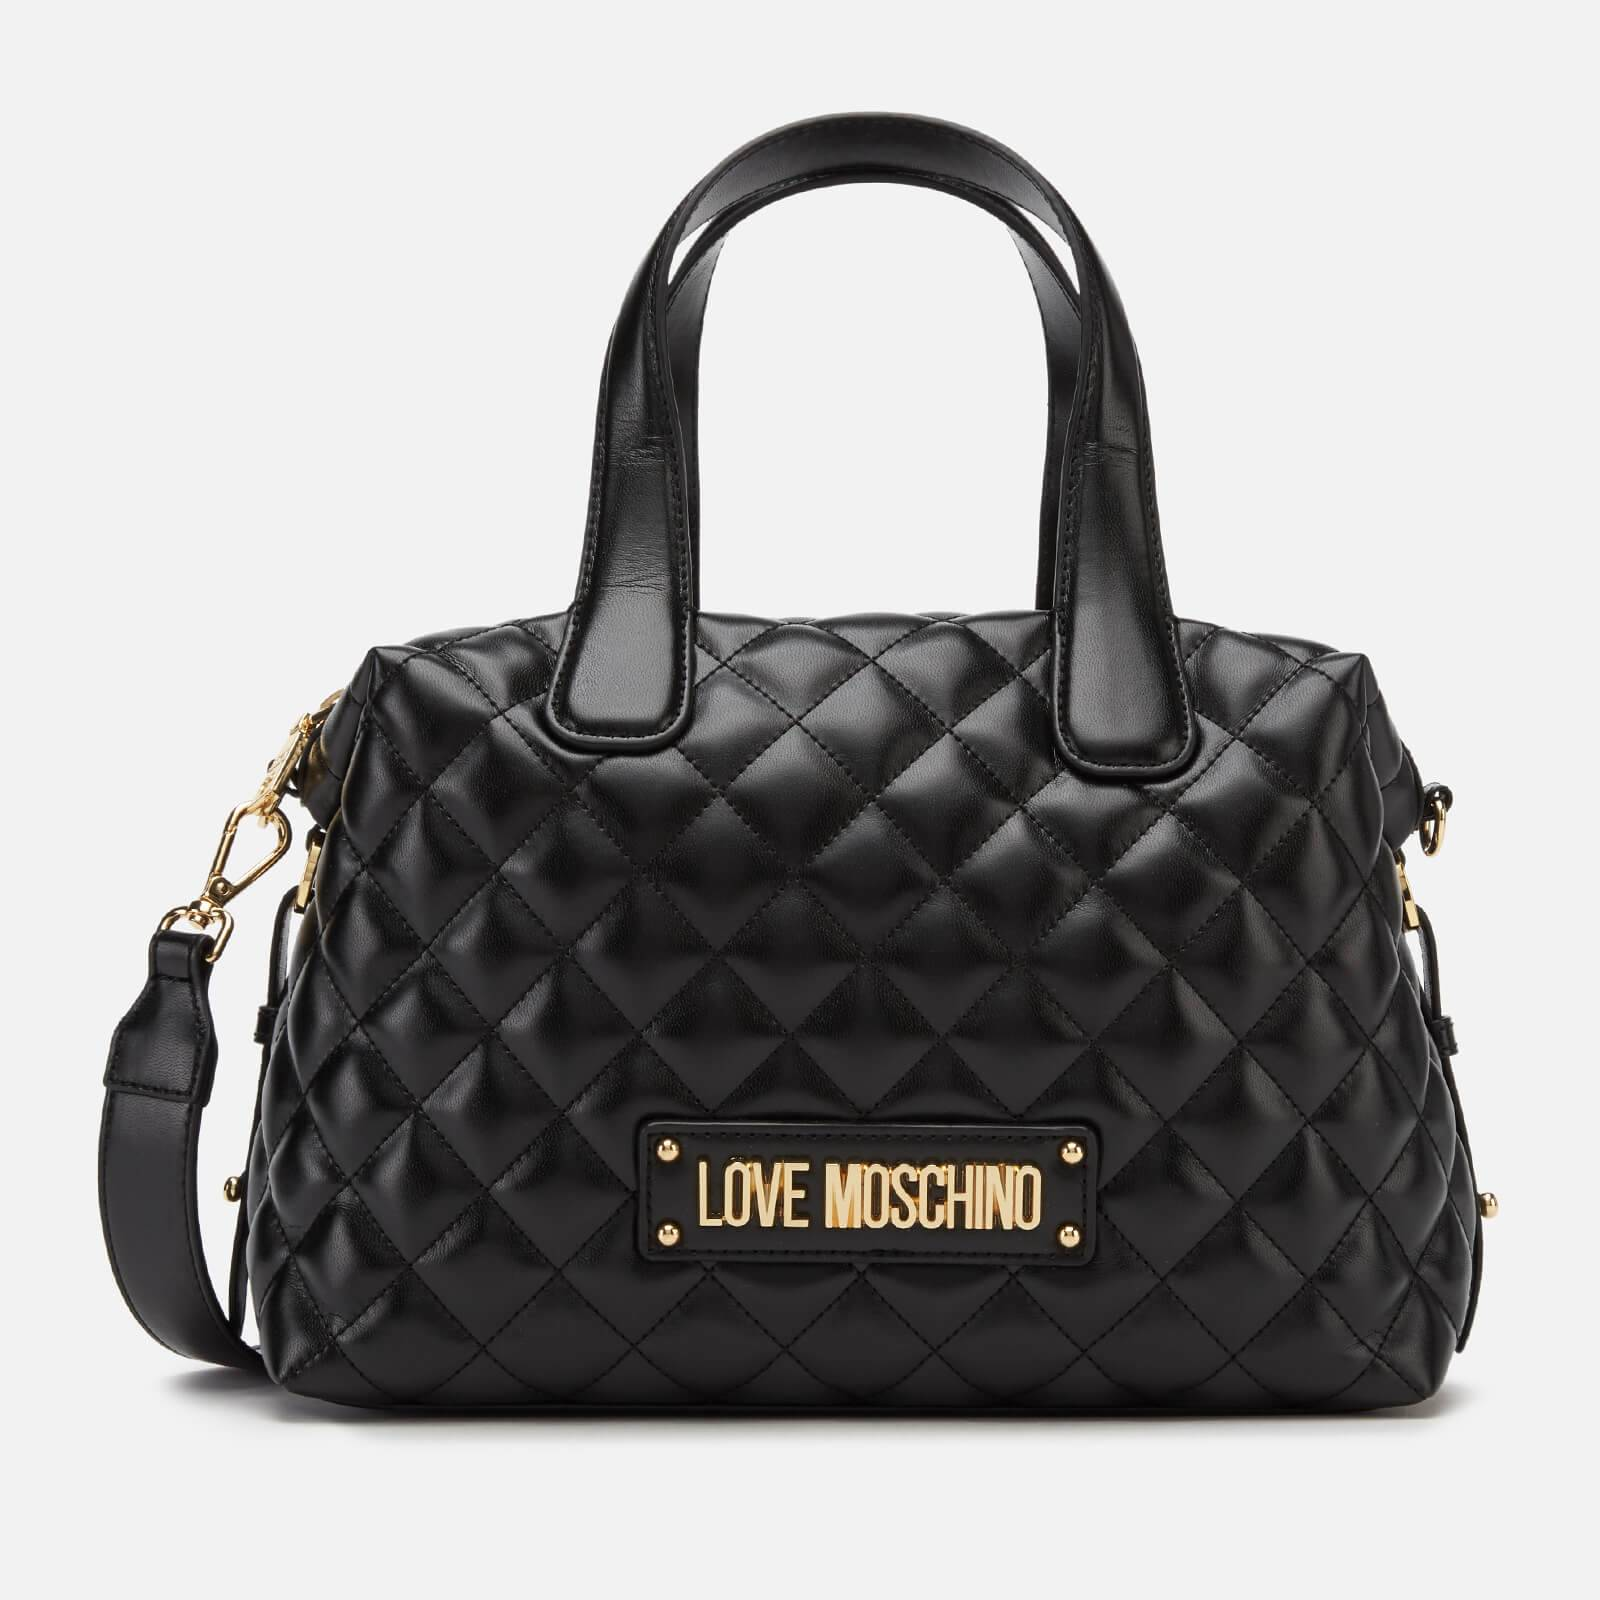 Moschino Love Moschino Women's Quilted Bowling Bag - Black